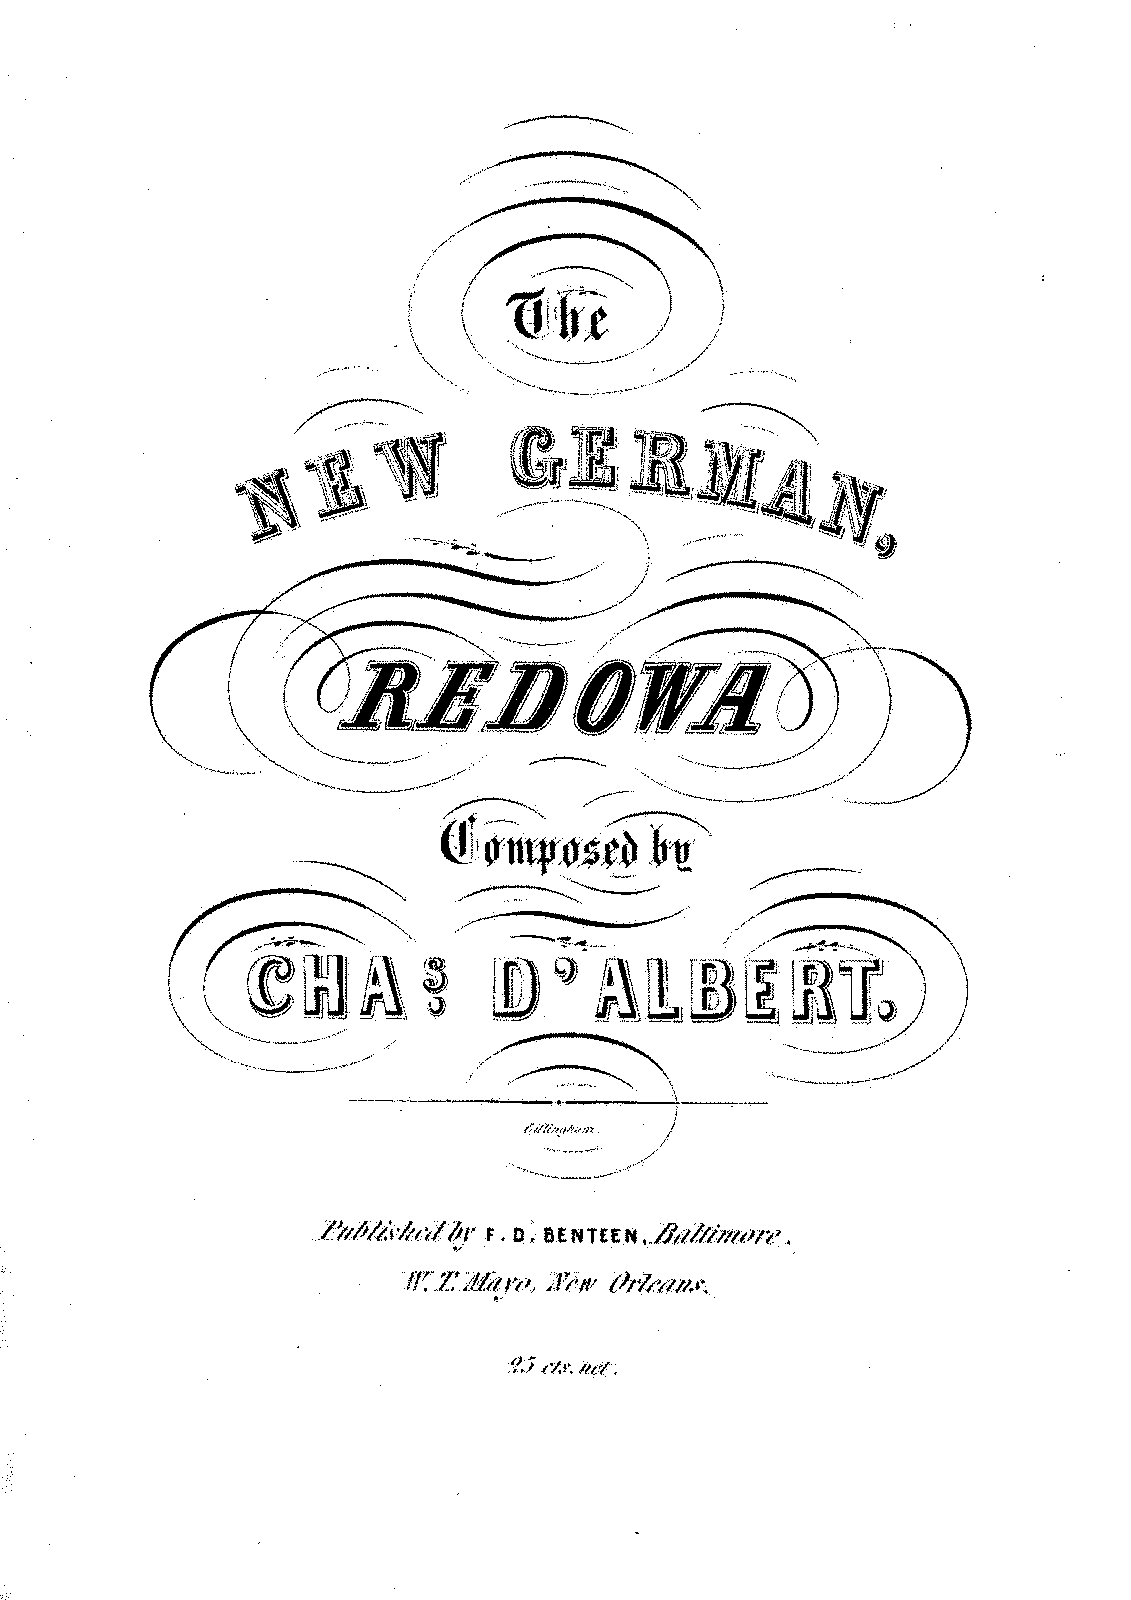 PMLP342526-Albert, Charles Louis Napoleon d' - 1809-1886 - The New German Redowa - F.D. Benteen.pdf